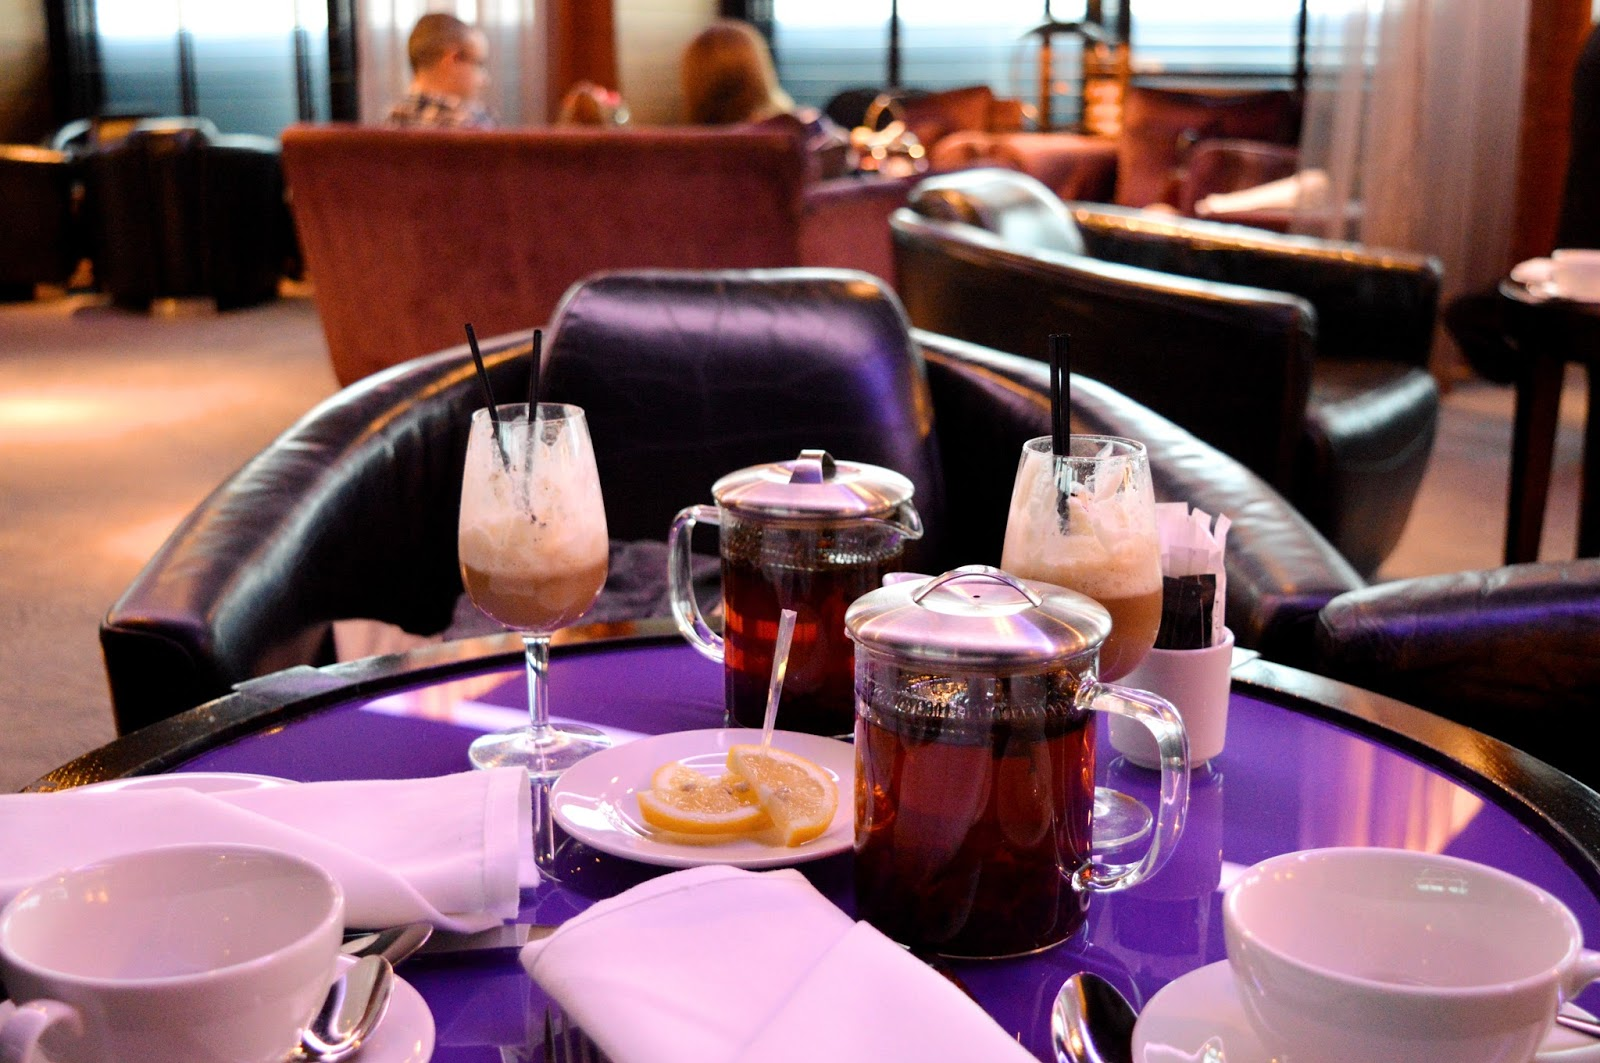 The Aviator Guilty Pleasure Afternoon Tea, Hampshire food blog, food bloggers